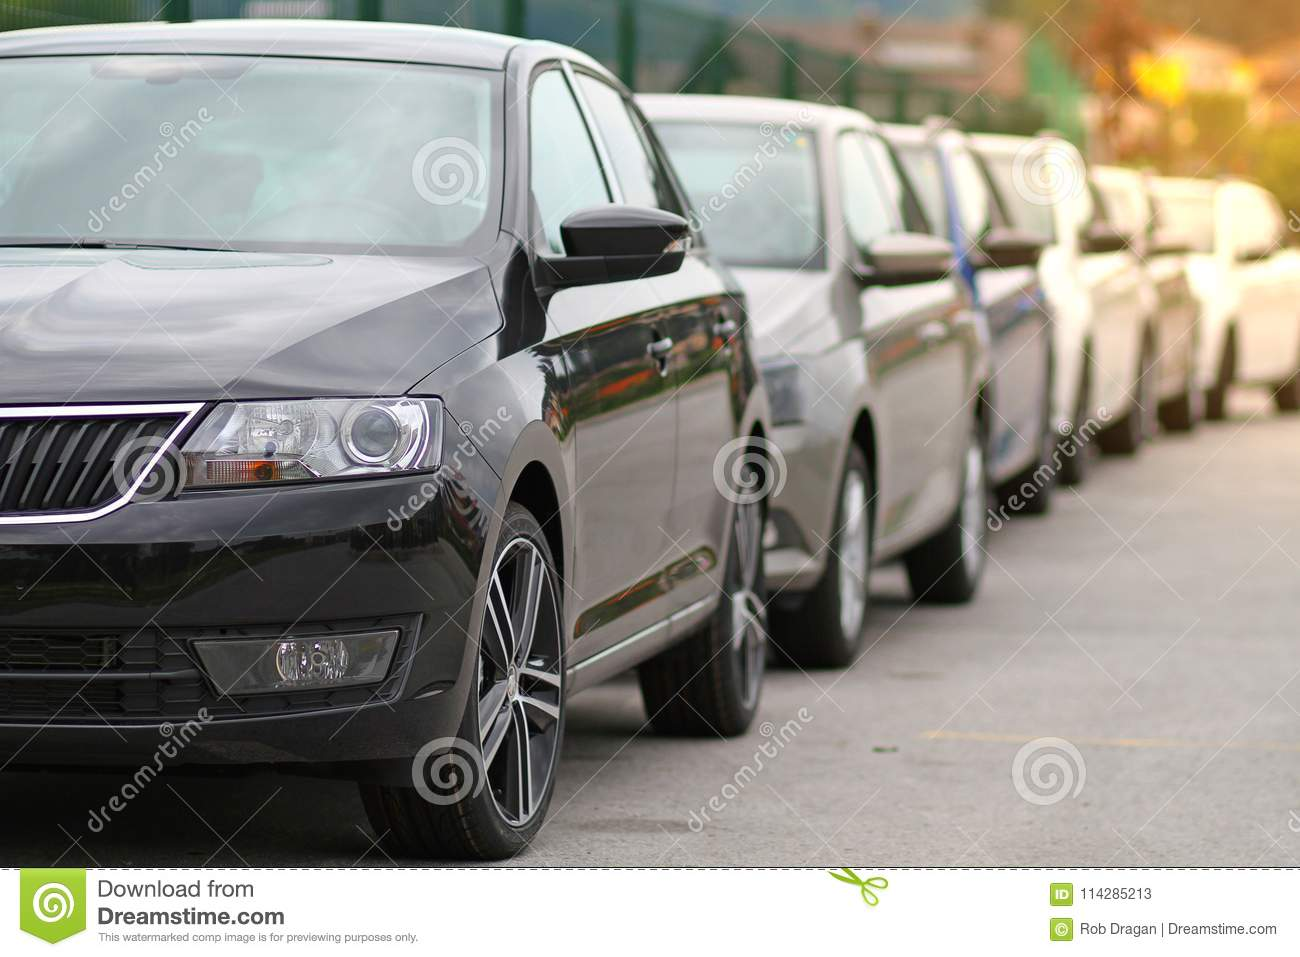 New cars parked in front of a car, motor dealer store, shop in queue